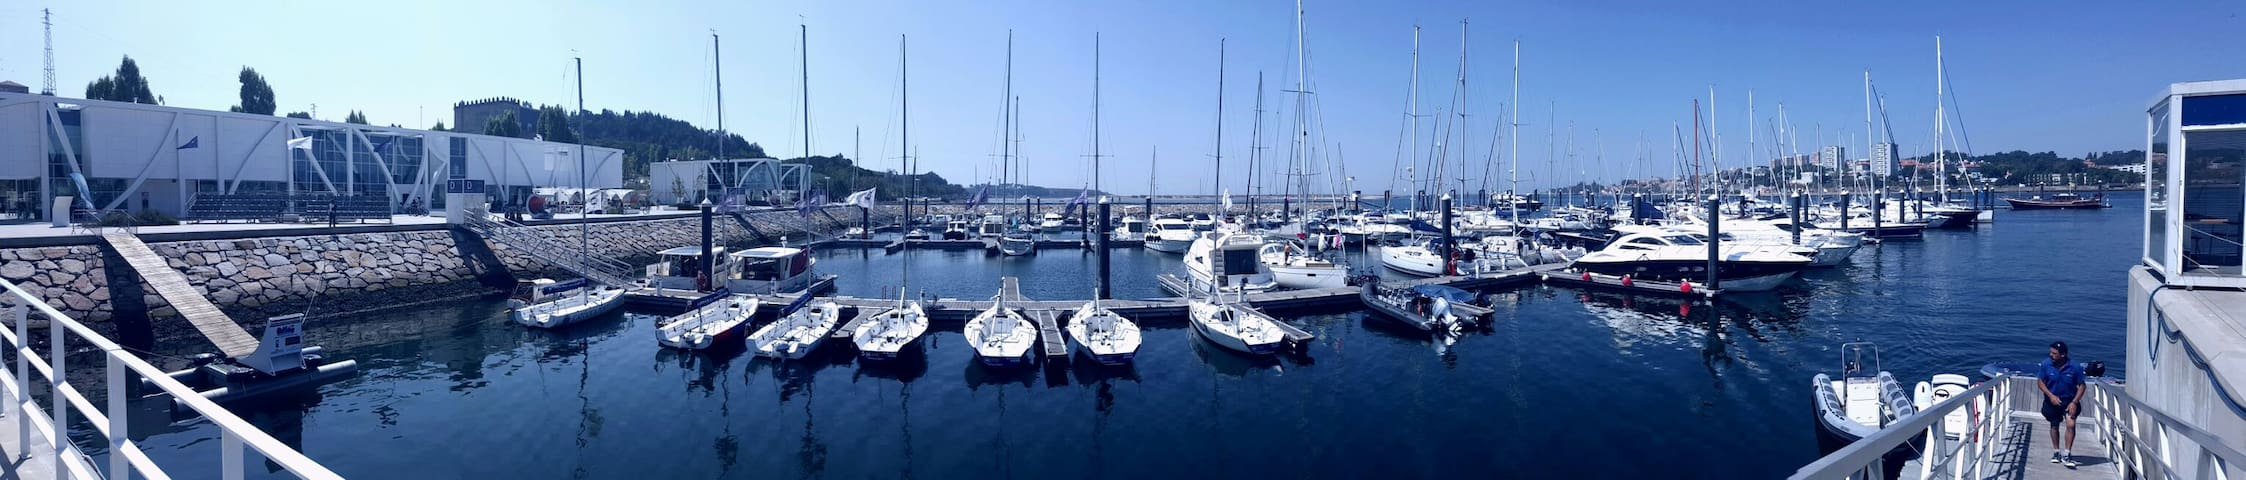 Marina da Afurada. Rent a boat and enjoy a romantic dinner on board.